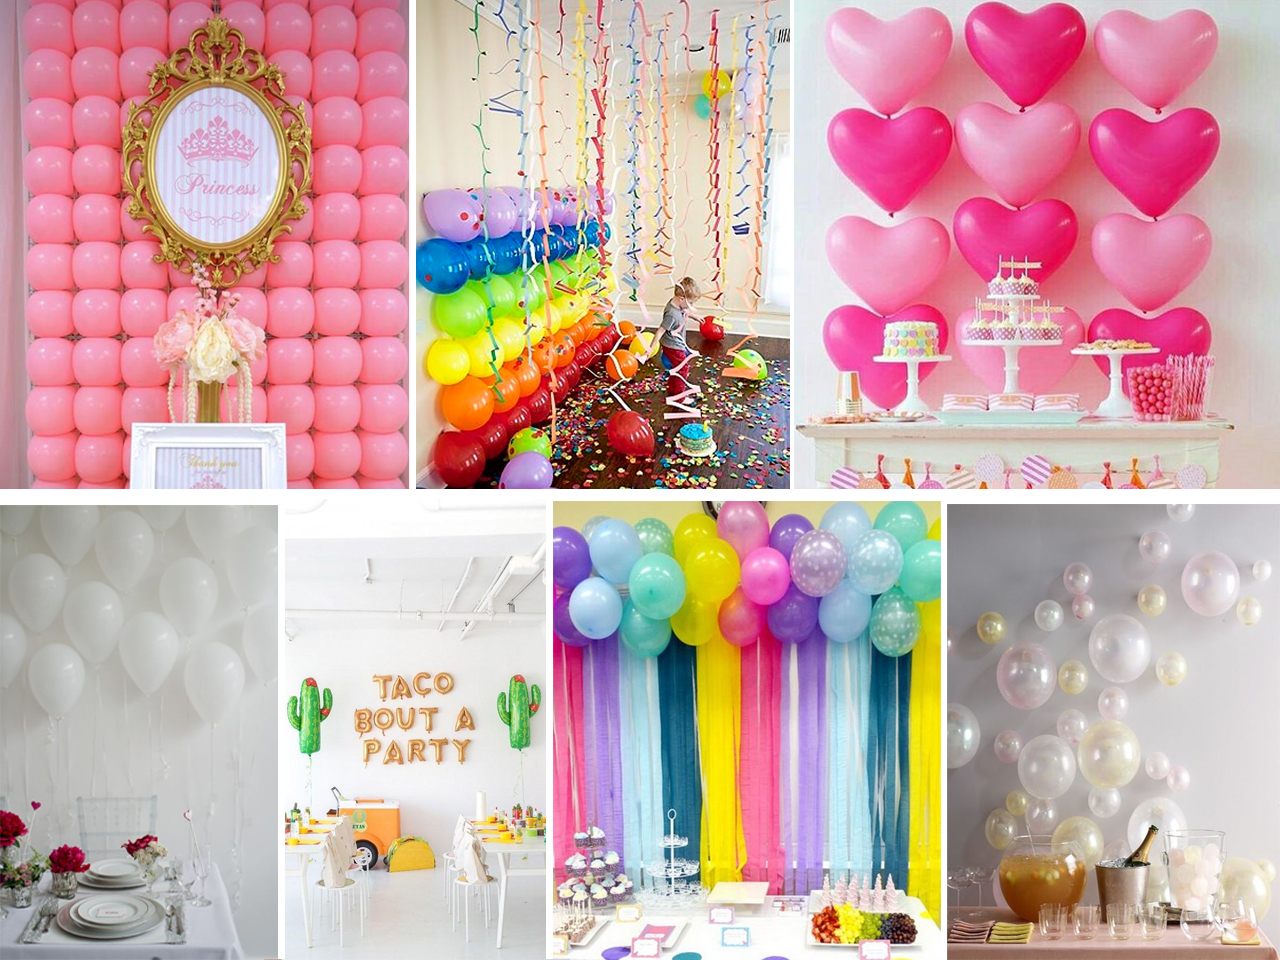 Descubre c mo decorar con globos con estas fant sticas ideas - Decoracion de paredes con fotografias ...